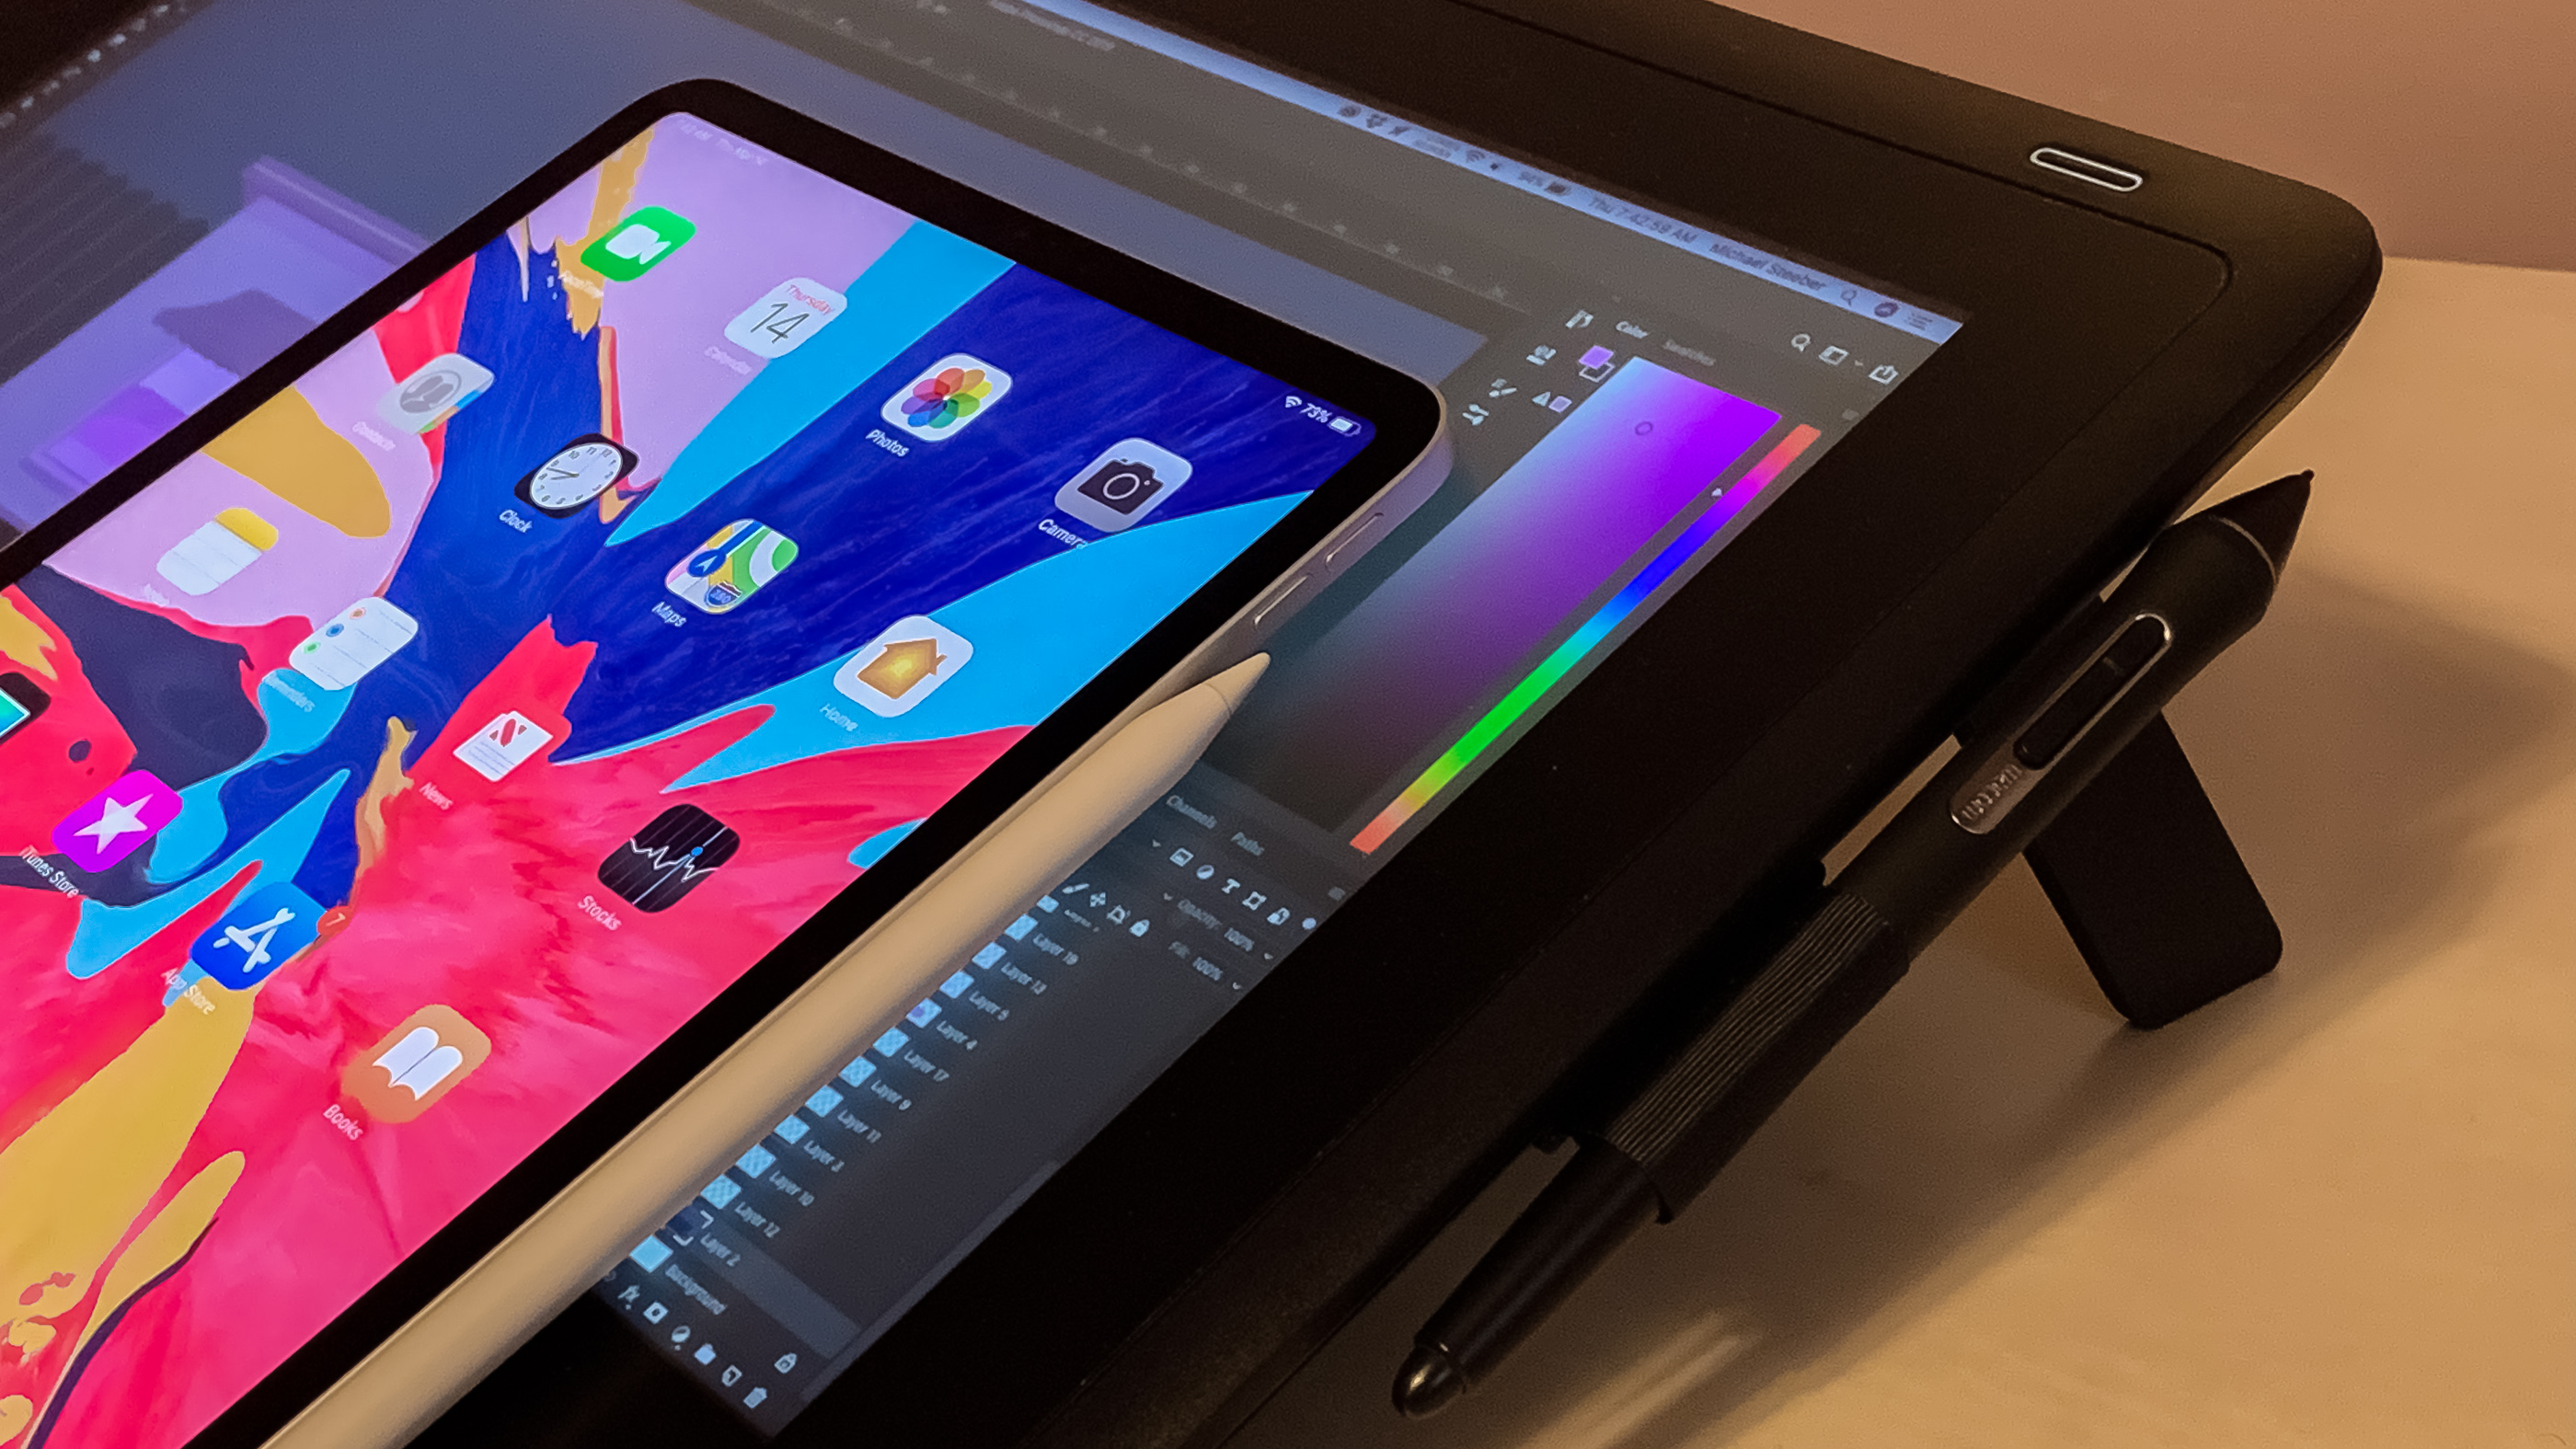 Hands-on: Wacom's Cintiq 16 tablet from the perspective of an iPad Pro user